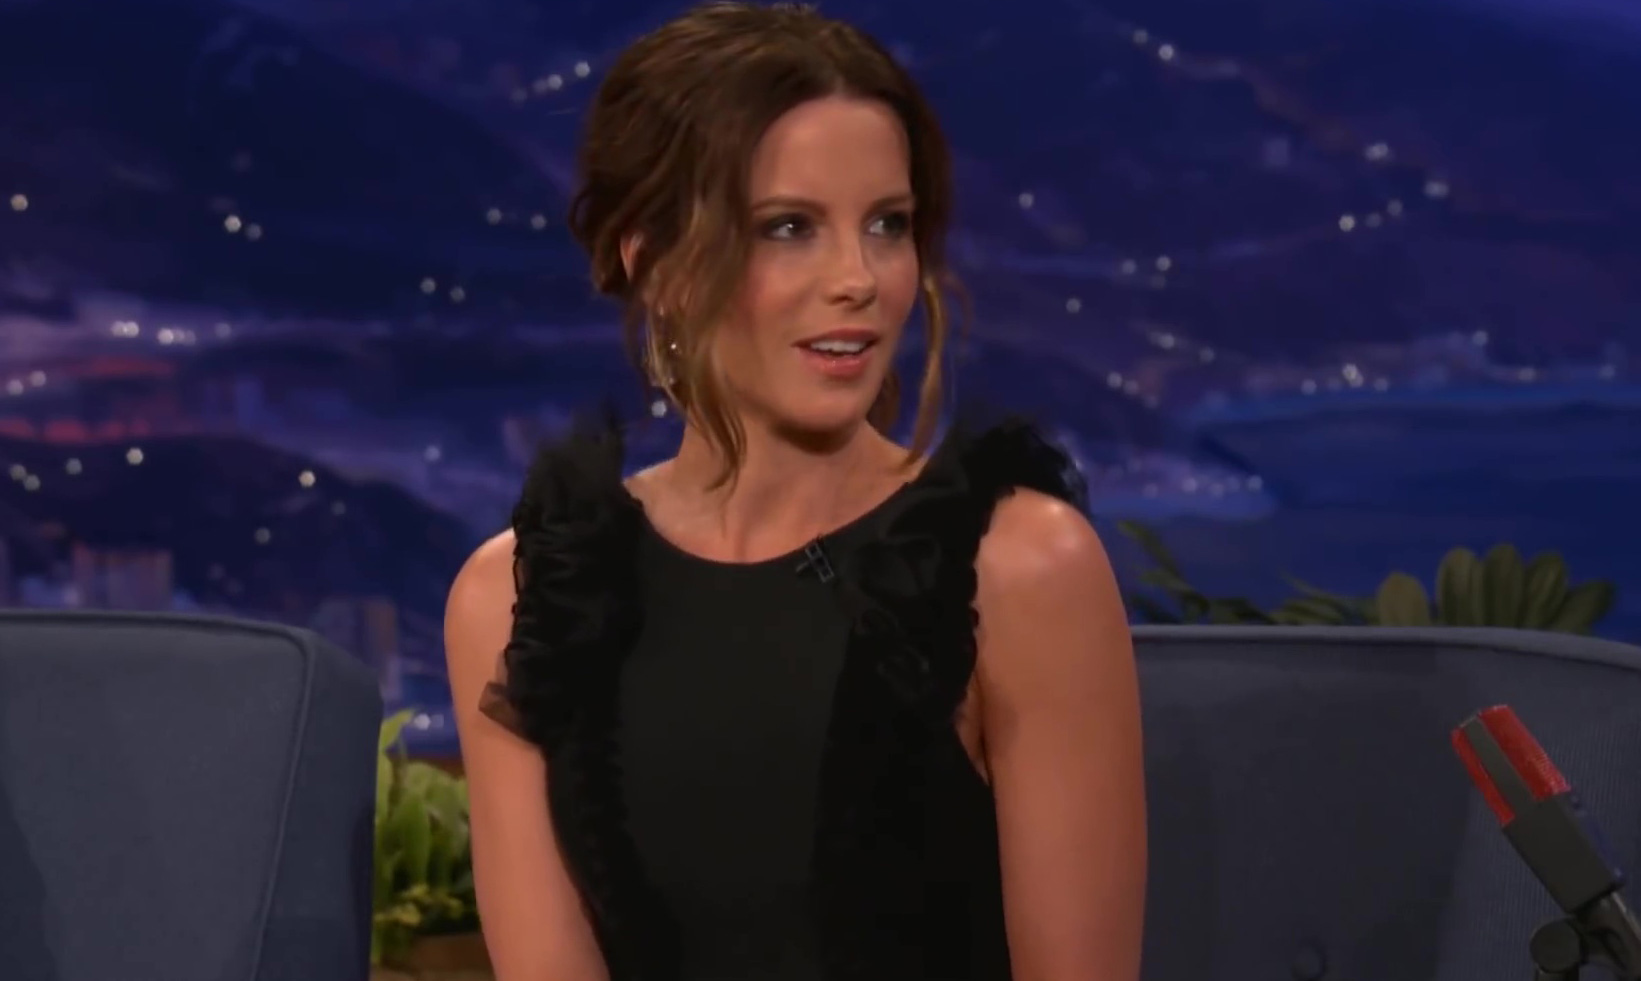 CONAN | Kate Beckinsale Almost Played The Three-Breasted Prostitute